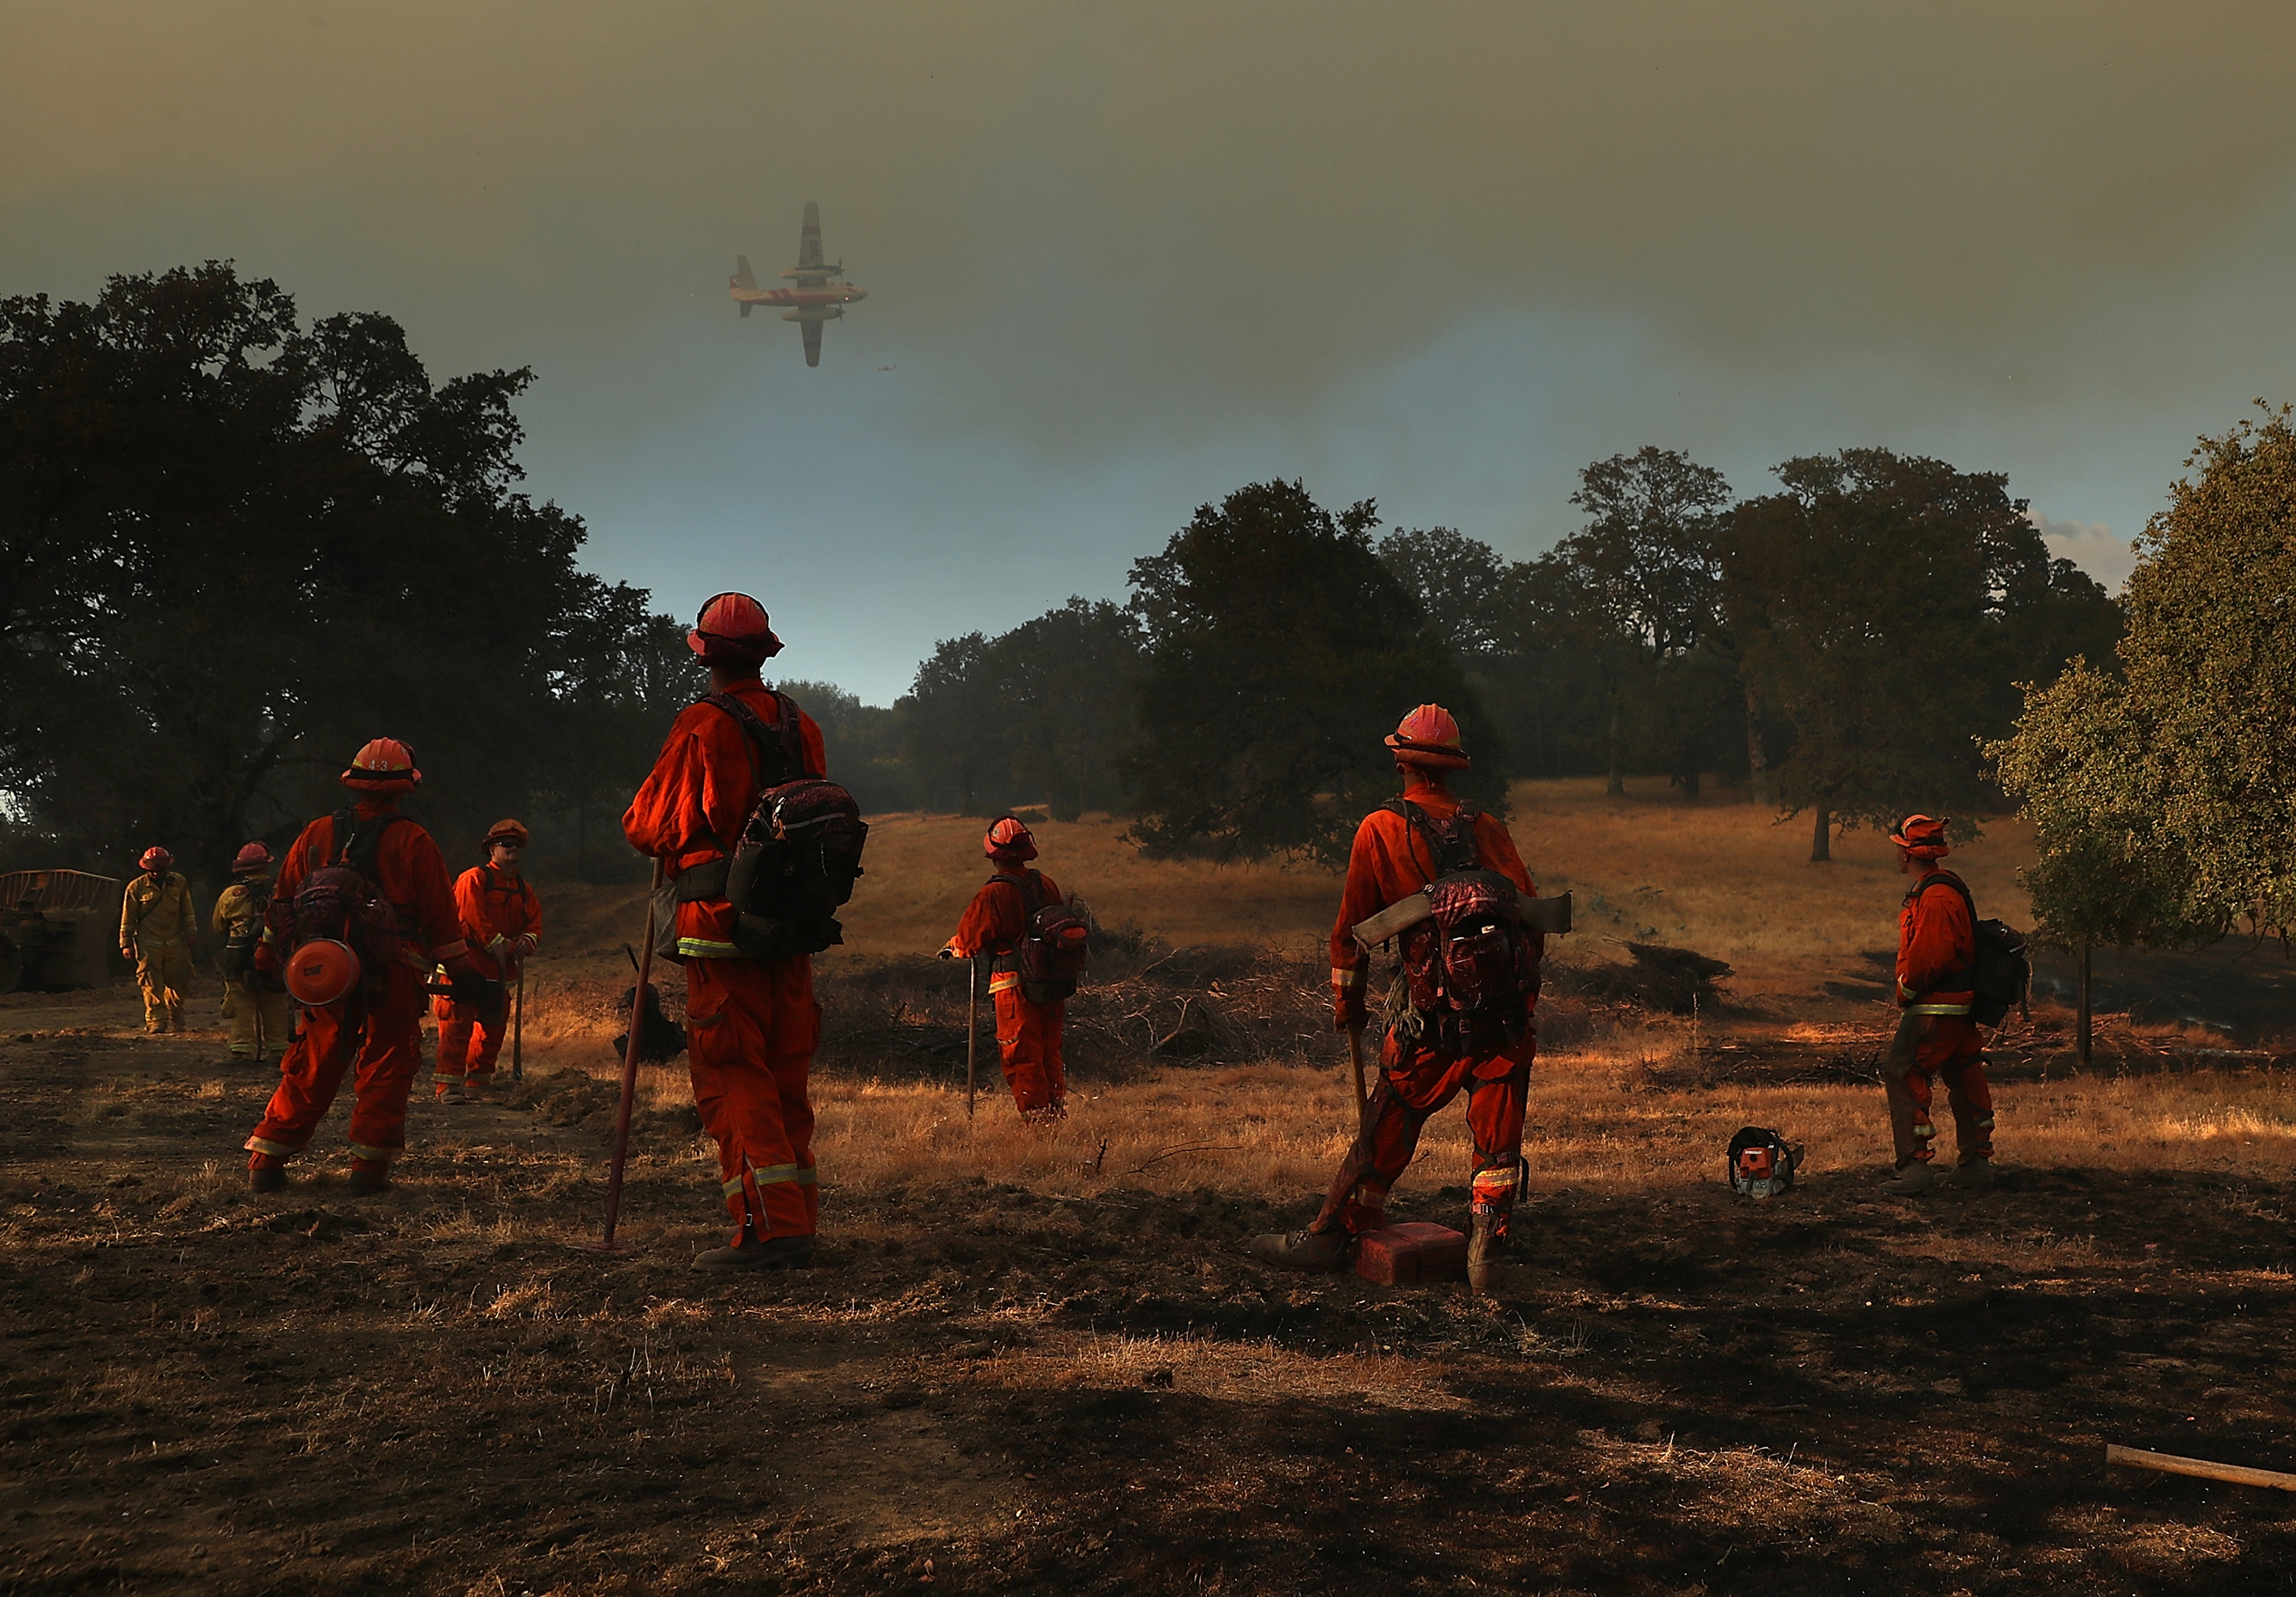 Inmate firefighters look on as a firefighting aircraft prepares to drop fire retardant ahead of the River Fire as it burns through a canyon in Lakeport, Calif. on on Aug. 1, 2018.